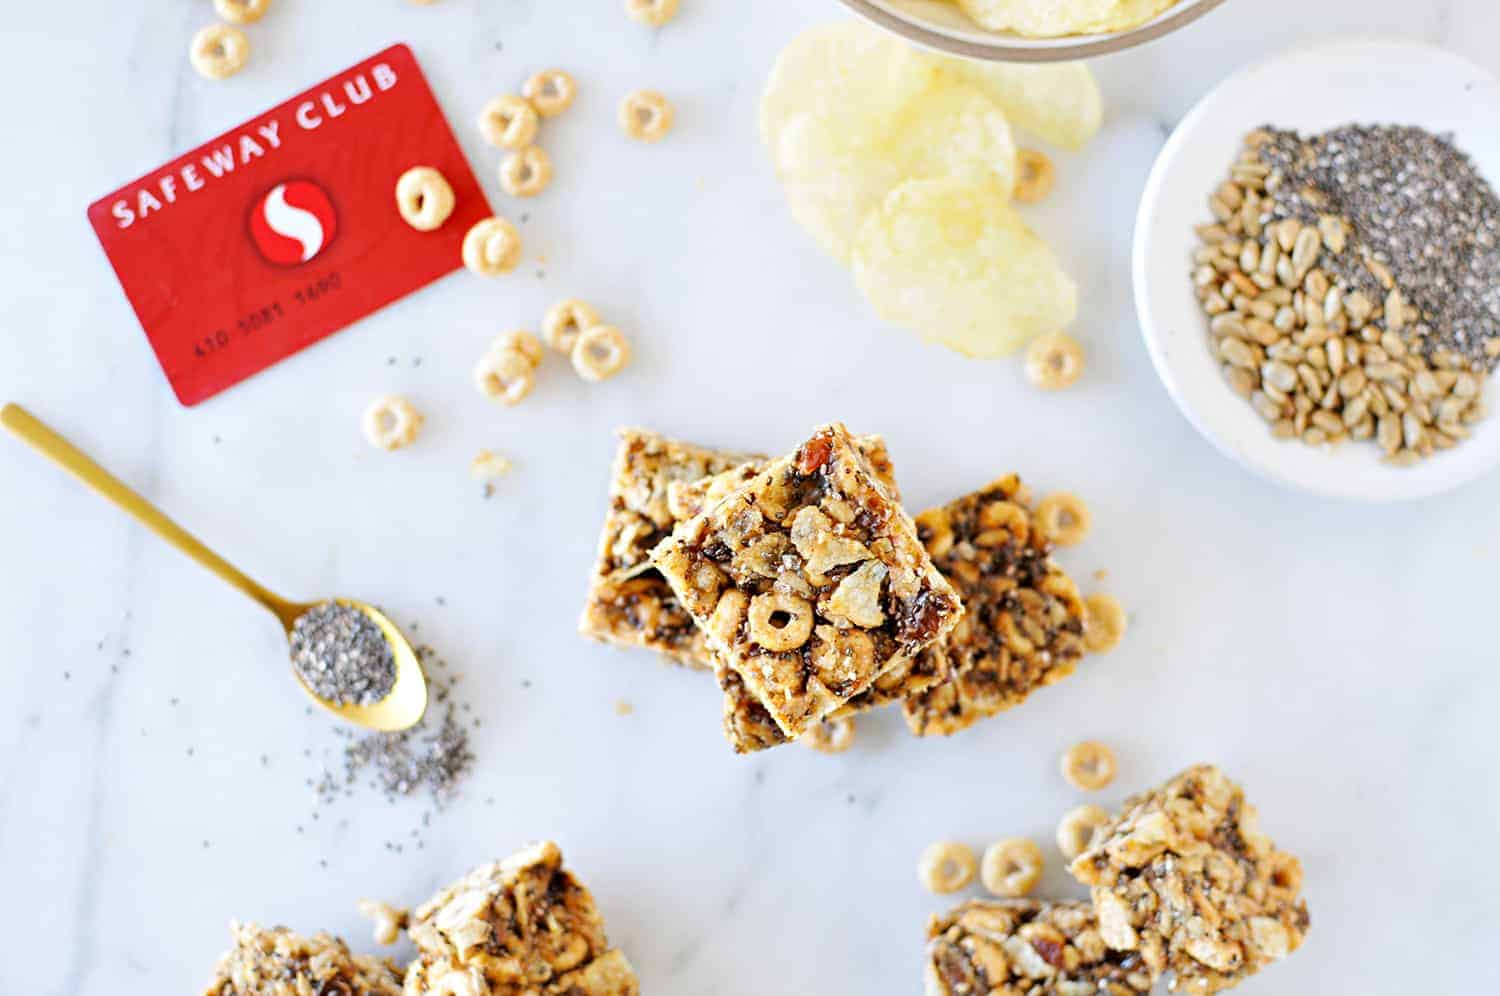 Gluten-Free Sweet and Salty Energy Bars / Our 10 Favorite Make-Ahead Breakfast Recipes (via thepigandquill.com) #mealprep